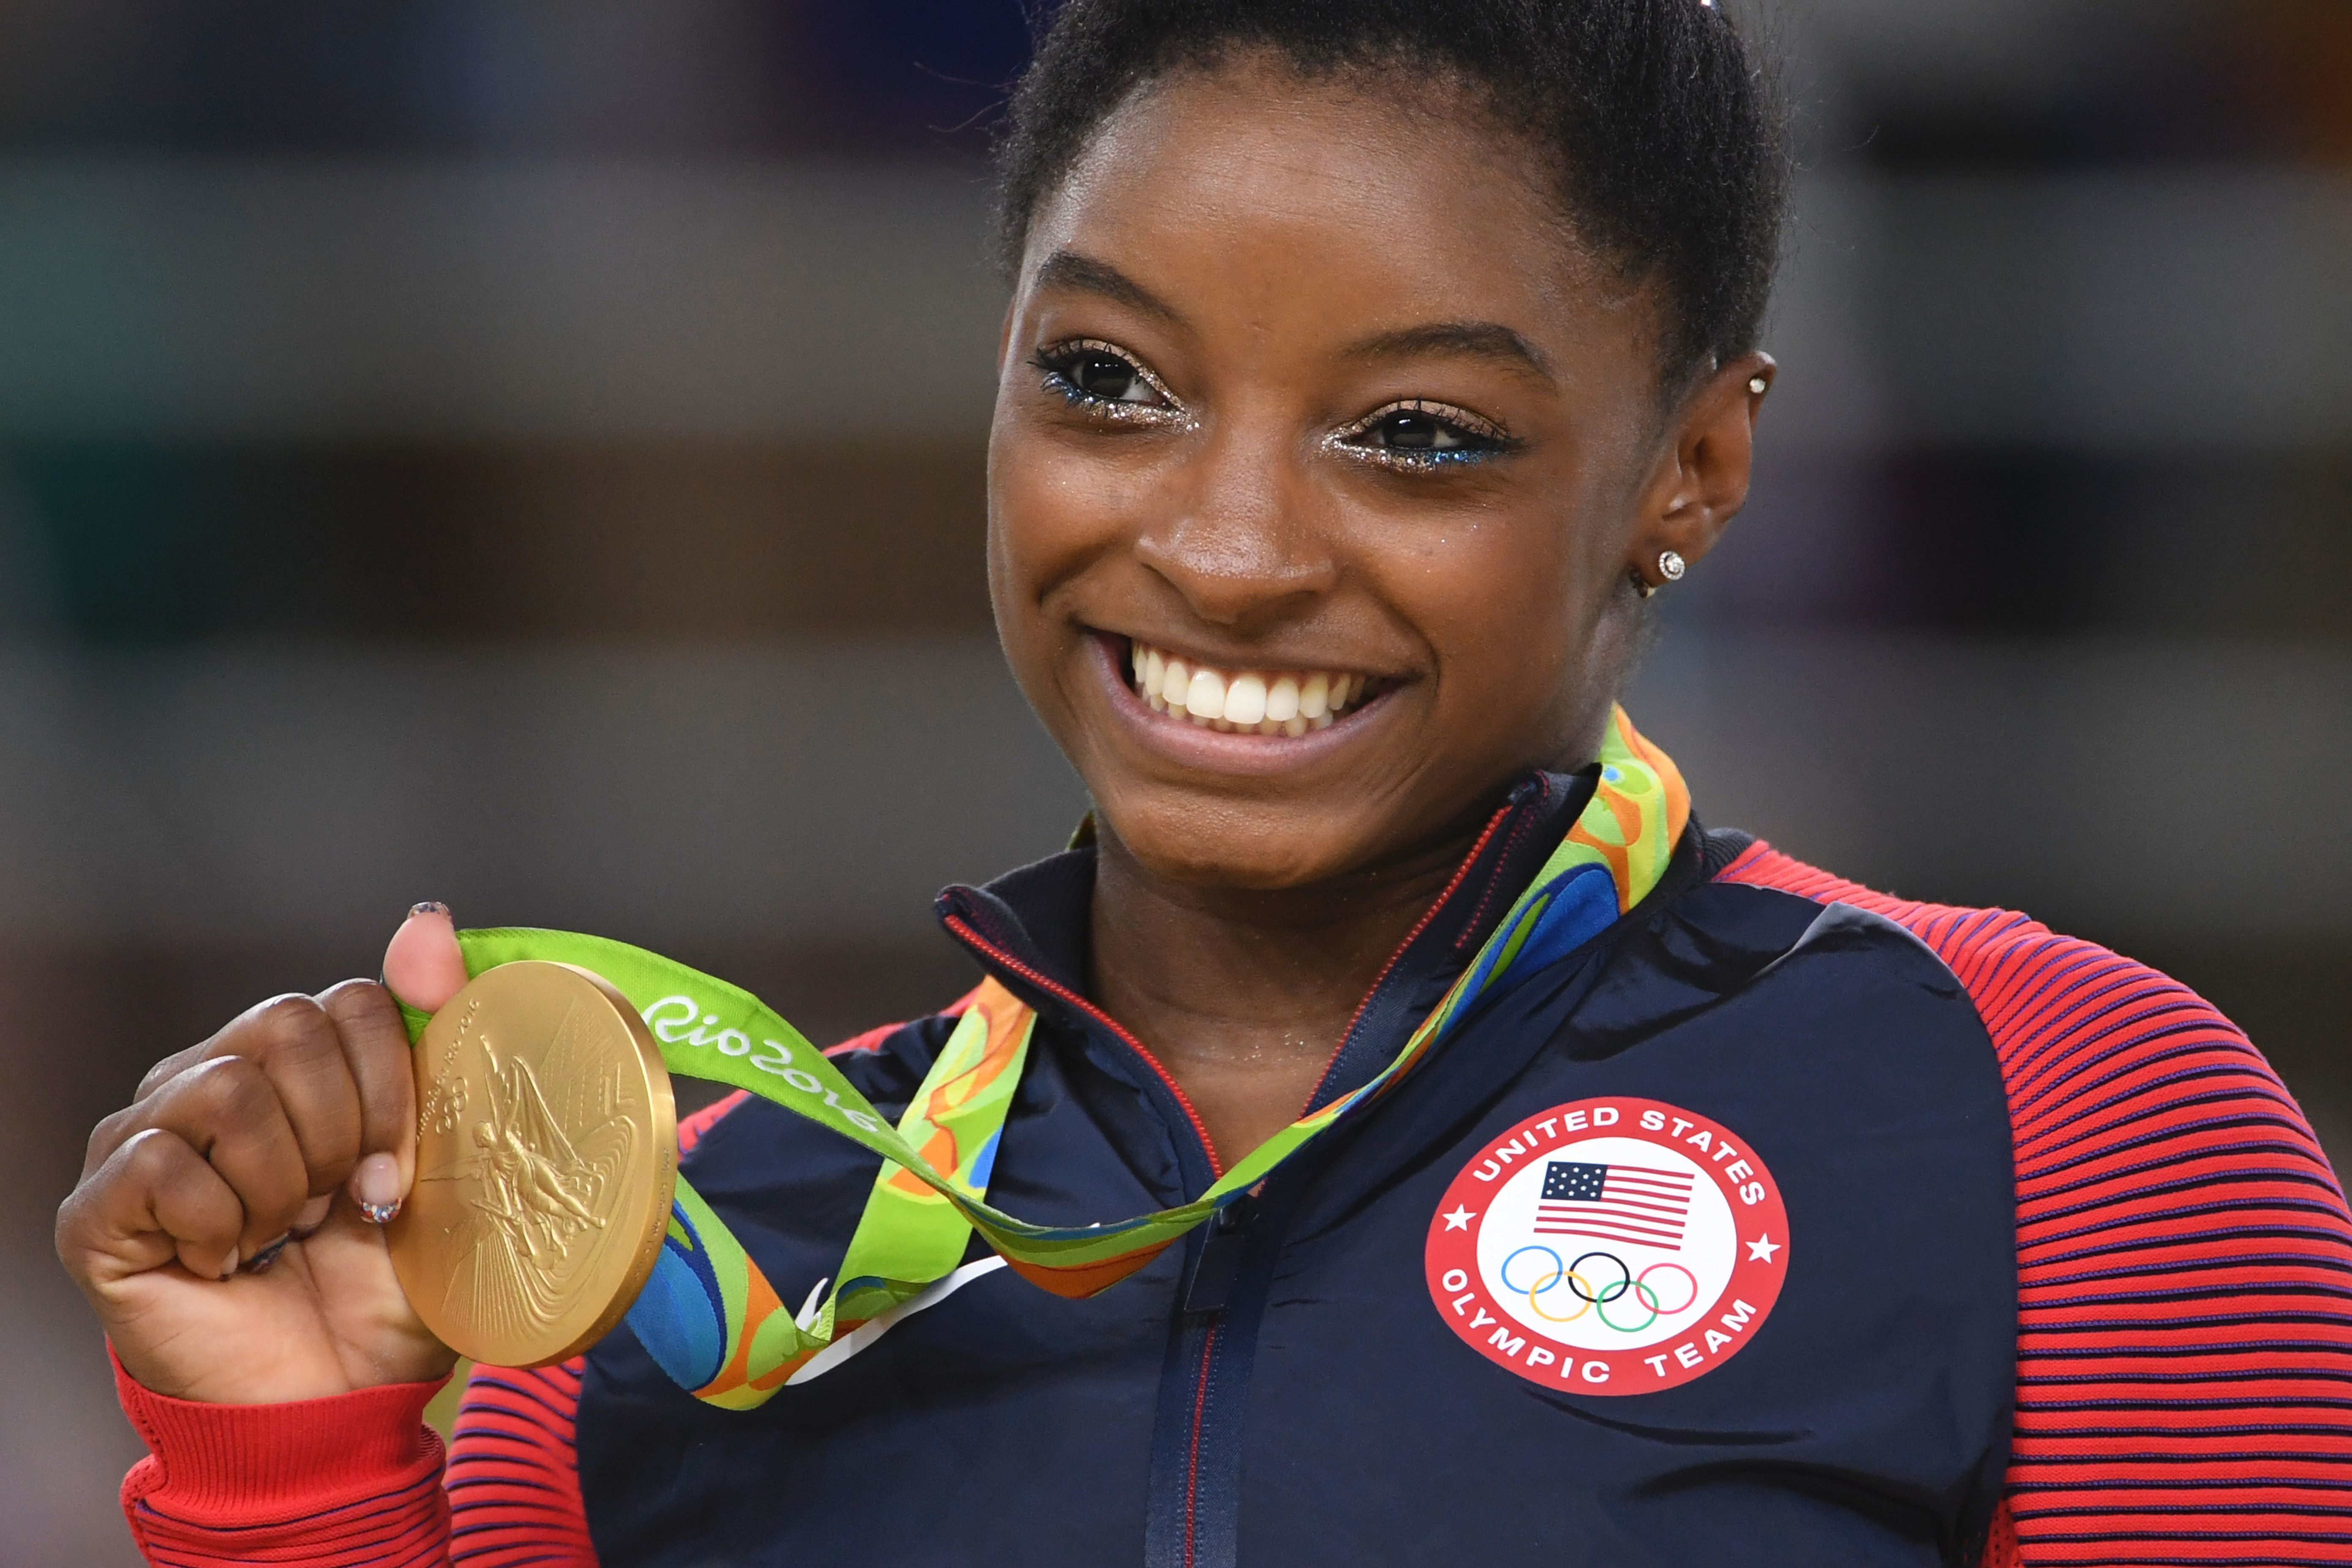 US gymnast Simone Biles celebrates on the podium of the women's floor event final of the Artistic Gymnastics at the Olympic Arena during the Rio 2016 Olympic Games in Rio de Janeiro on August 16, 2016. / AFP / Toshifumi KITAMURA        (Photo credit should read TOSHIFUMI KITAMURA/AFP/Getty Images)